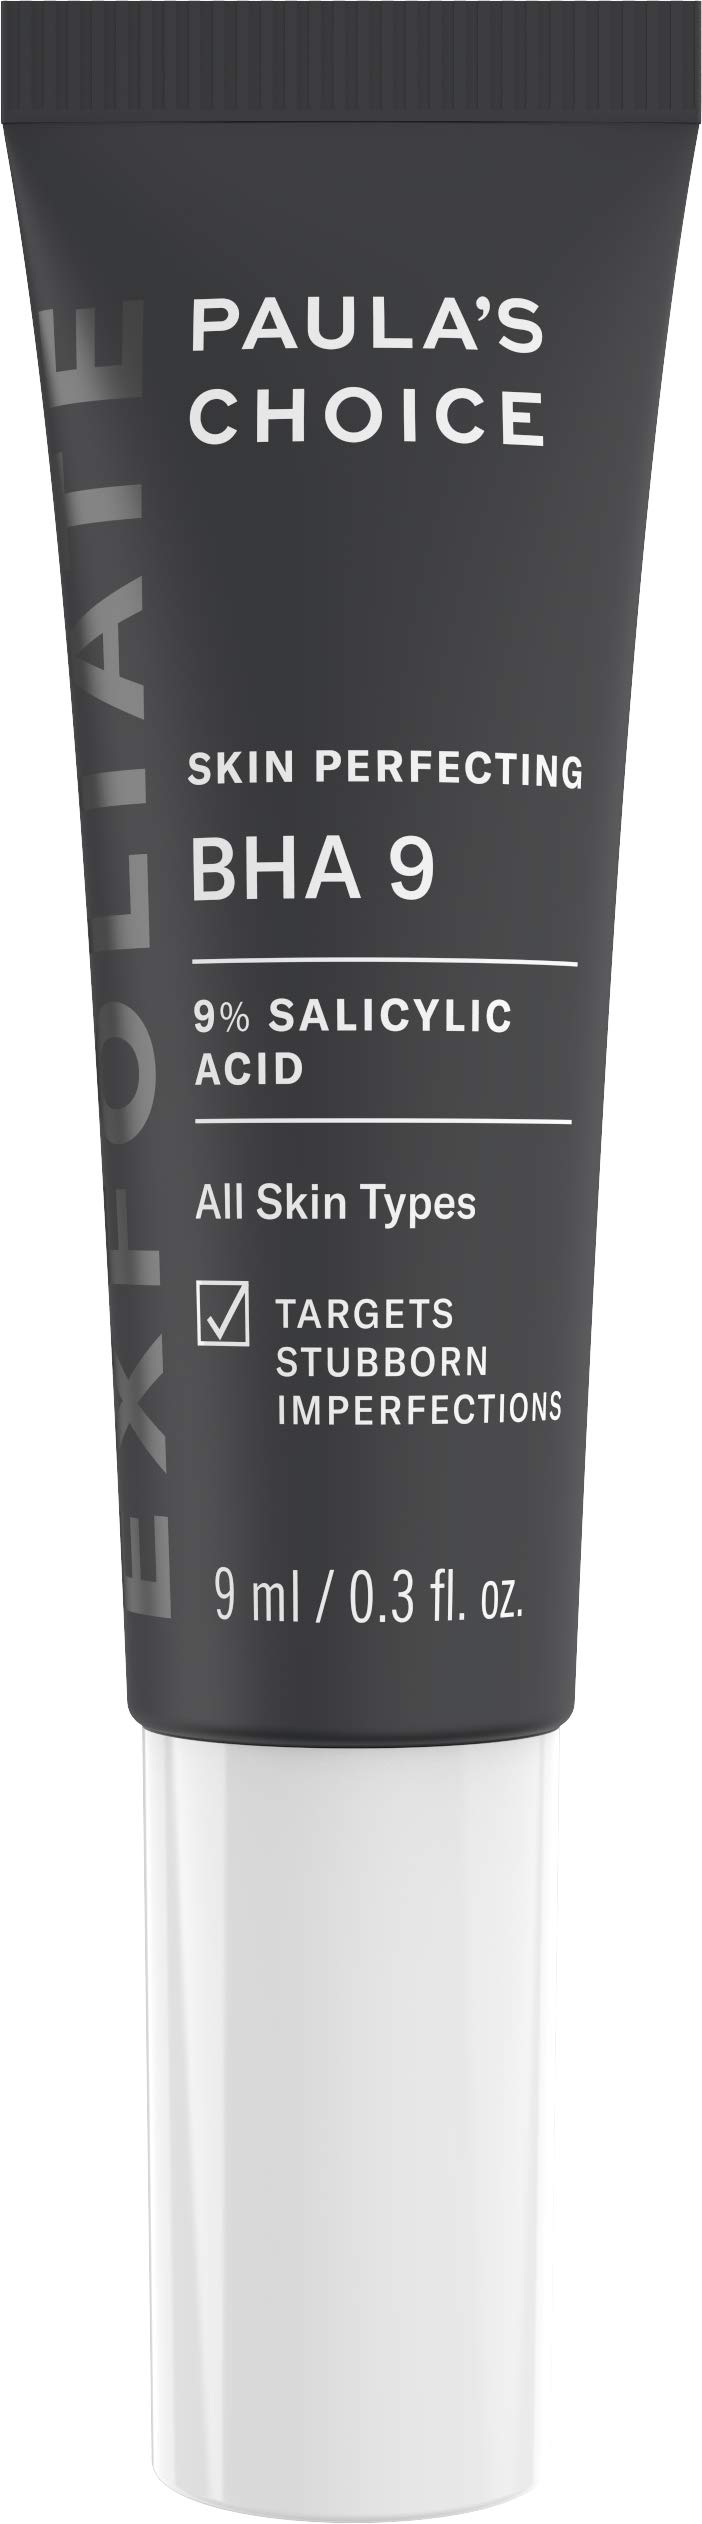 Paula's Choice Skin Perfecting BHA 9 Spot Treatment, 9% Salicylic Acid Exfoliant for Large Pores & Milia Prone Skin, 0.3 Ounce, PACKAGING MAY VARY